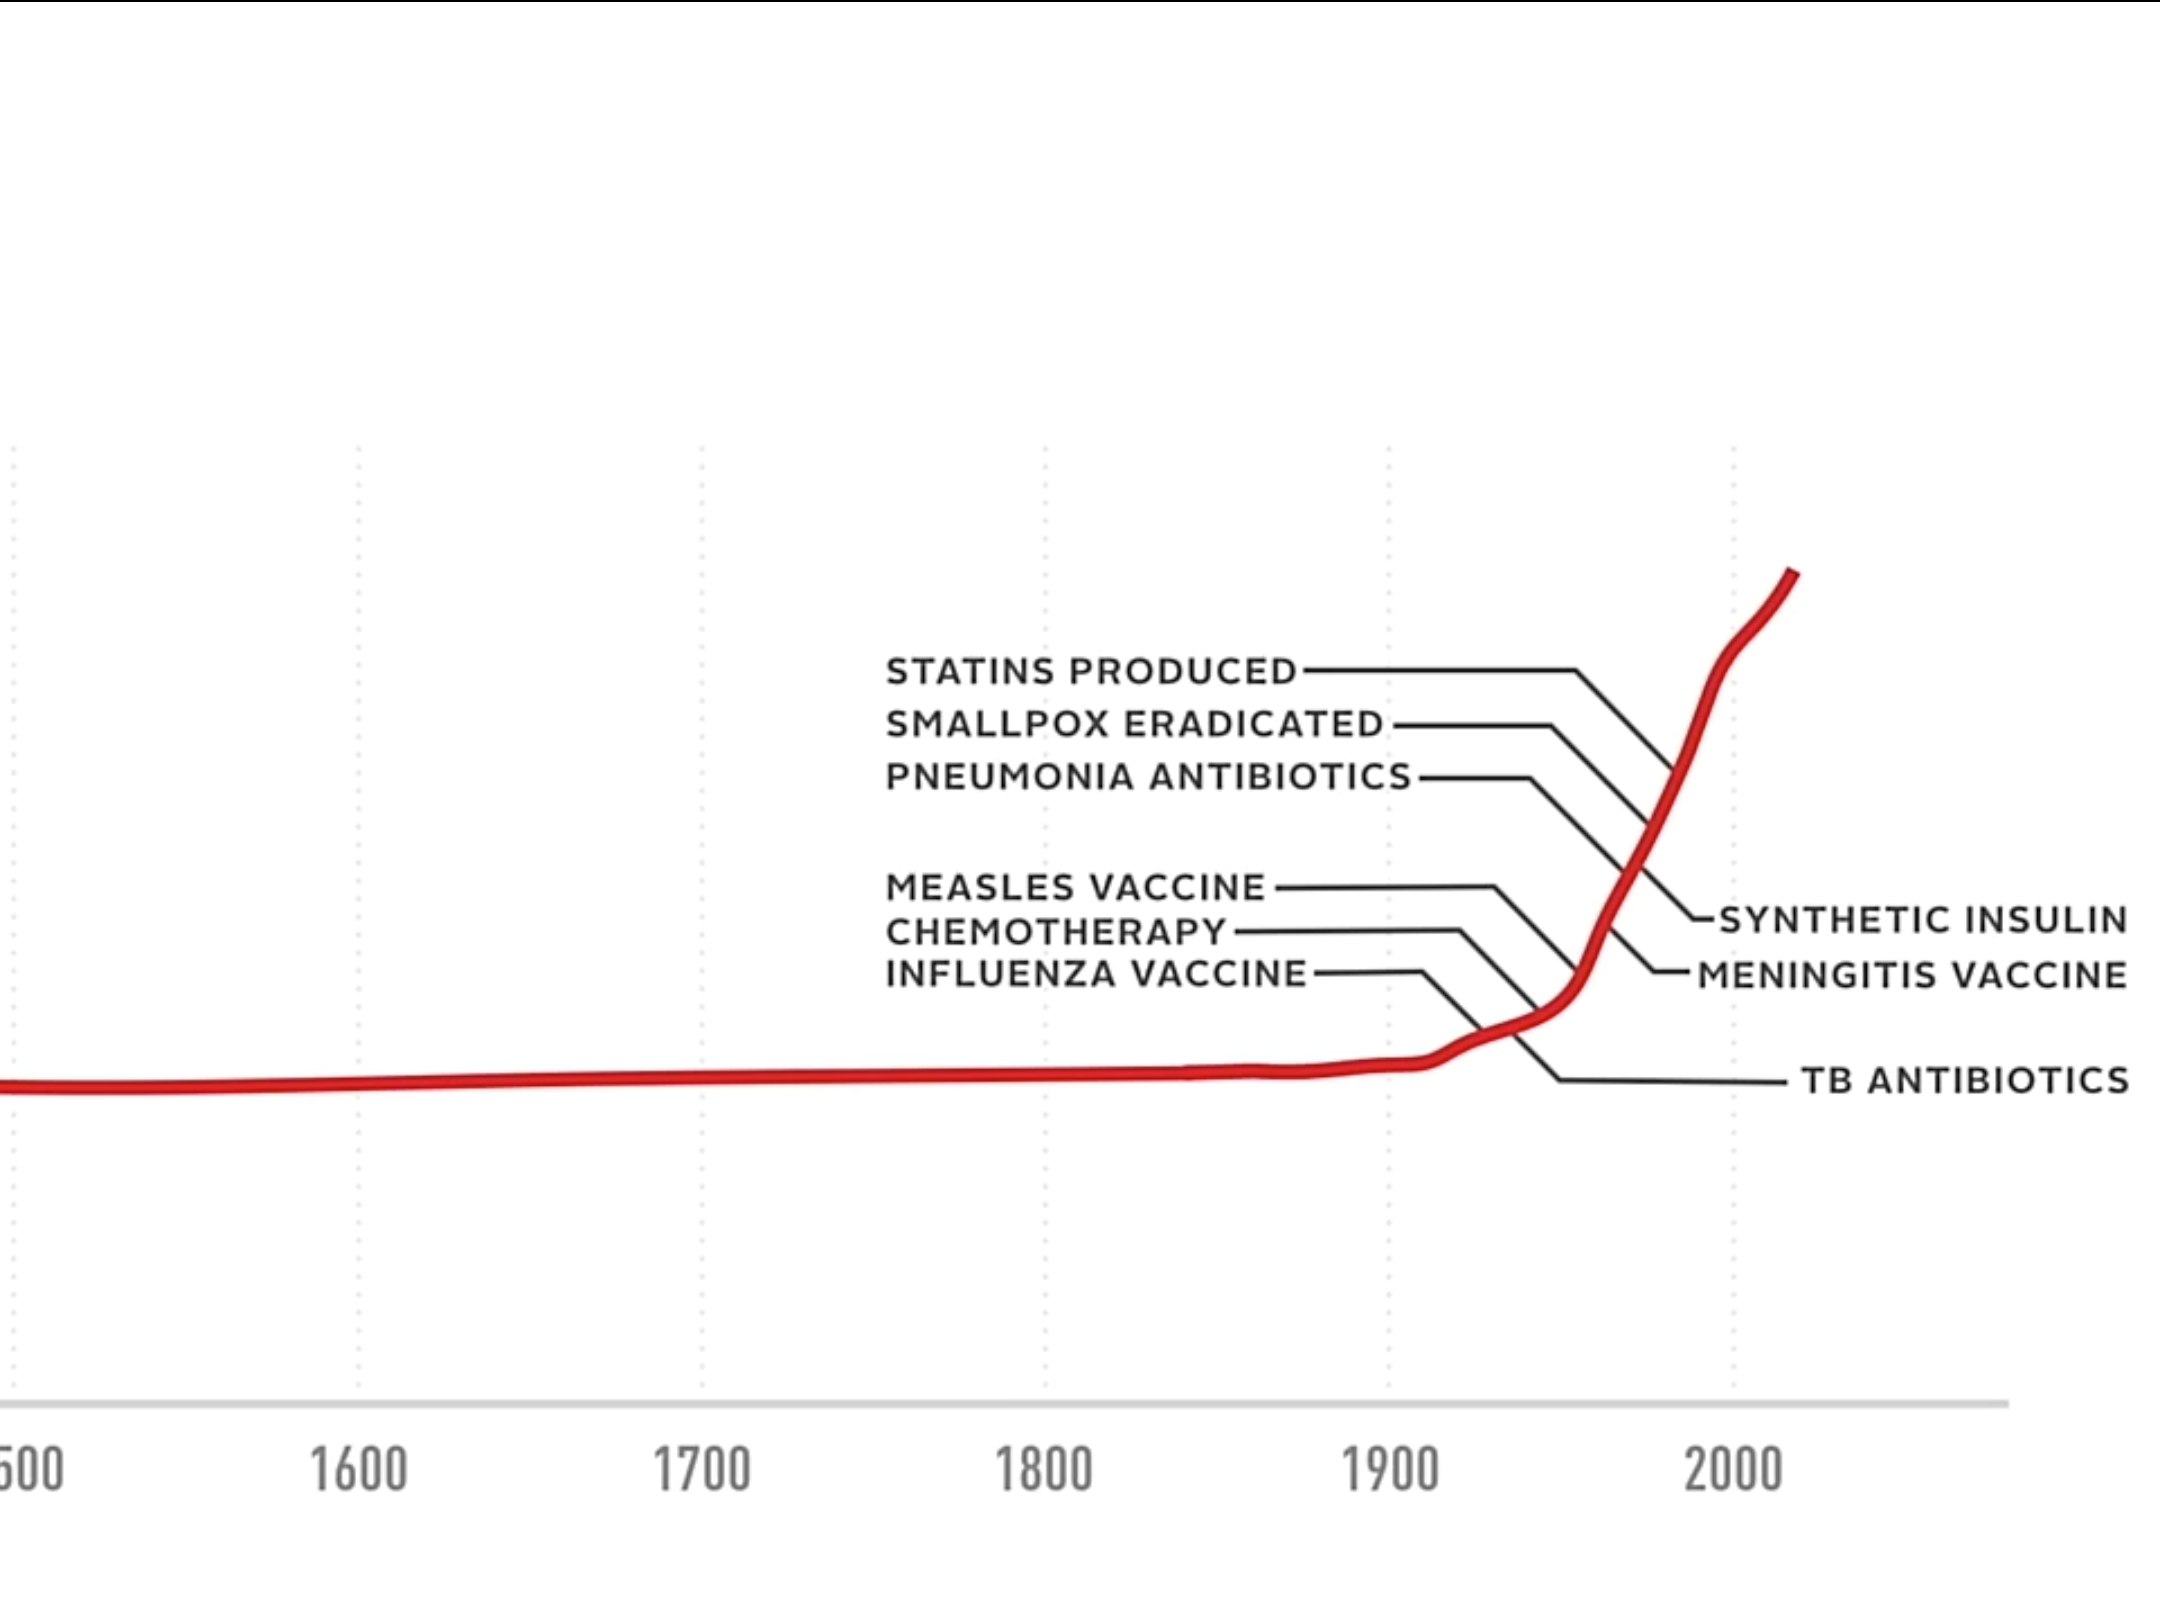 Life expectancy over the past six centuries, according to Zuckerberg and Chan.